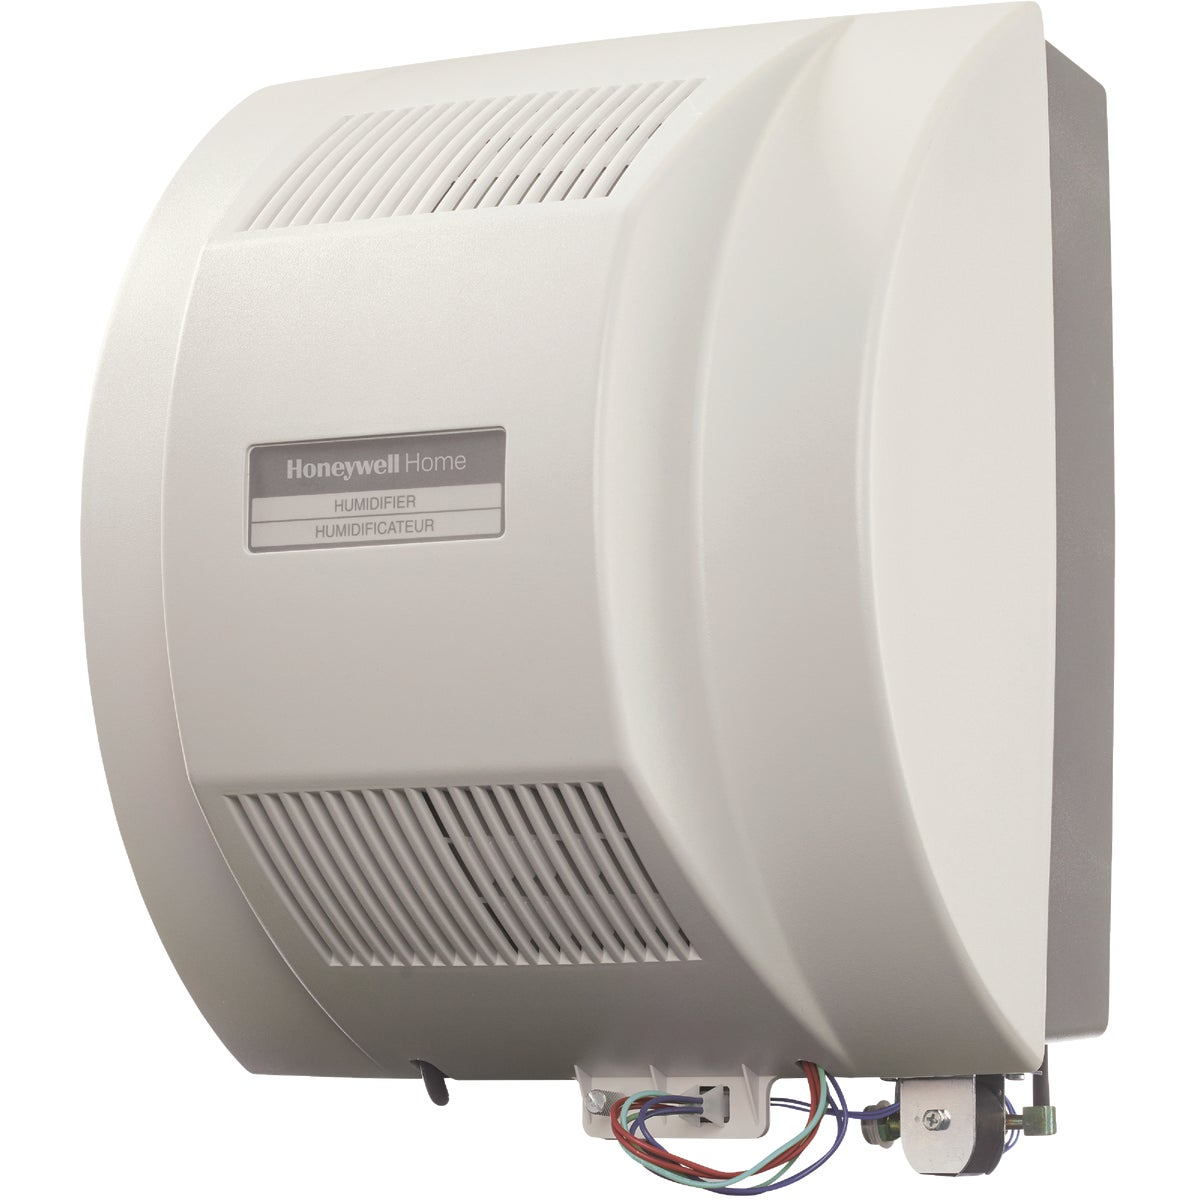 FURNACE HUMIDIFIER - HE360A1075 by Honeywell Internatl